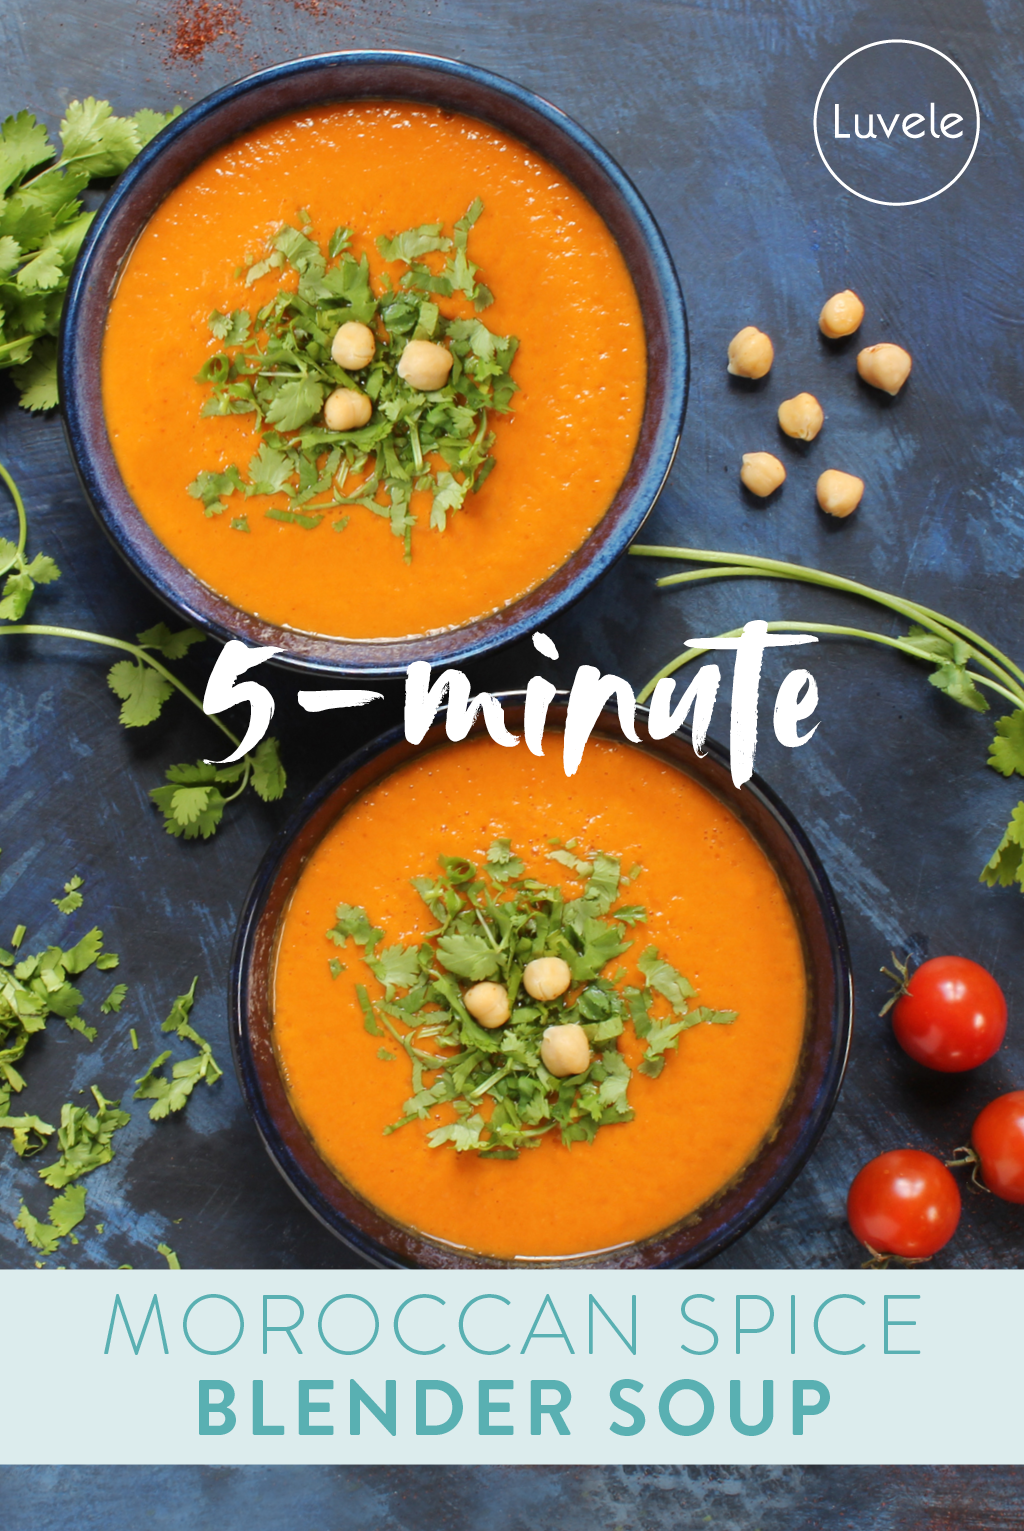 Moroccan spiced chickpea blender soup